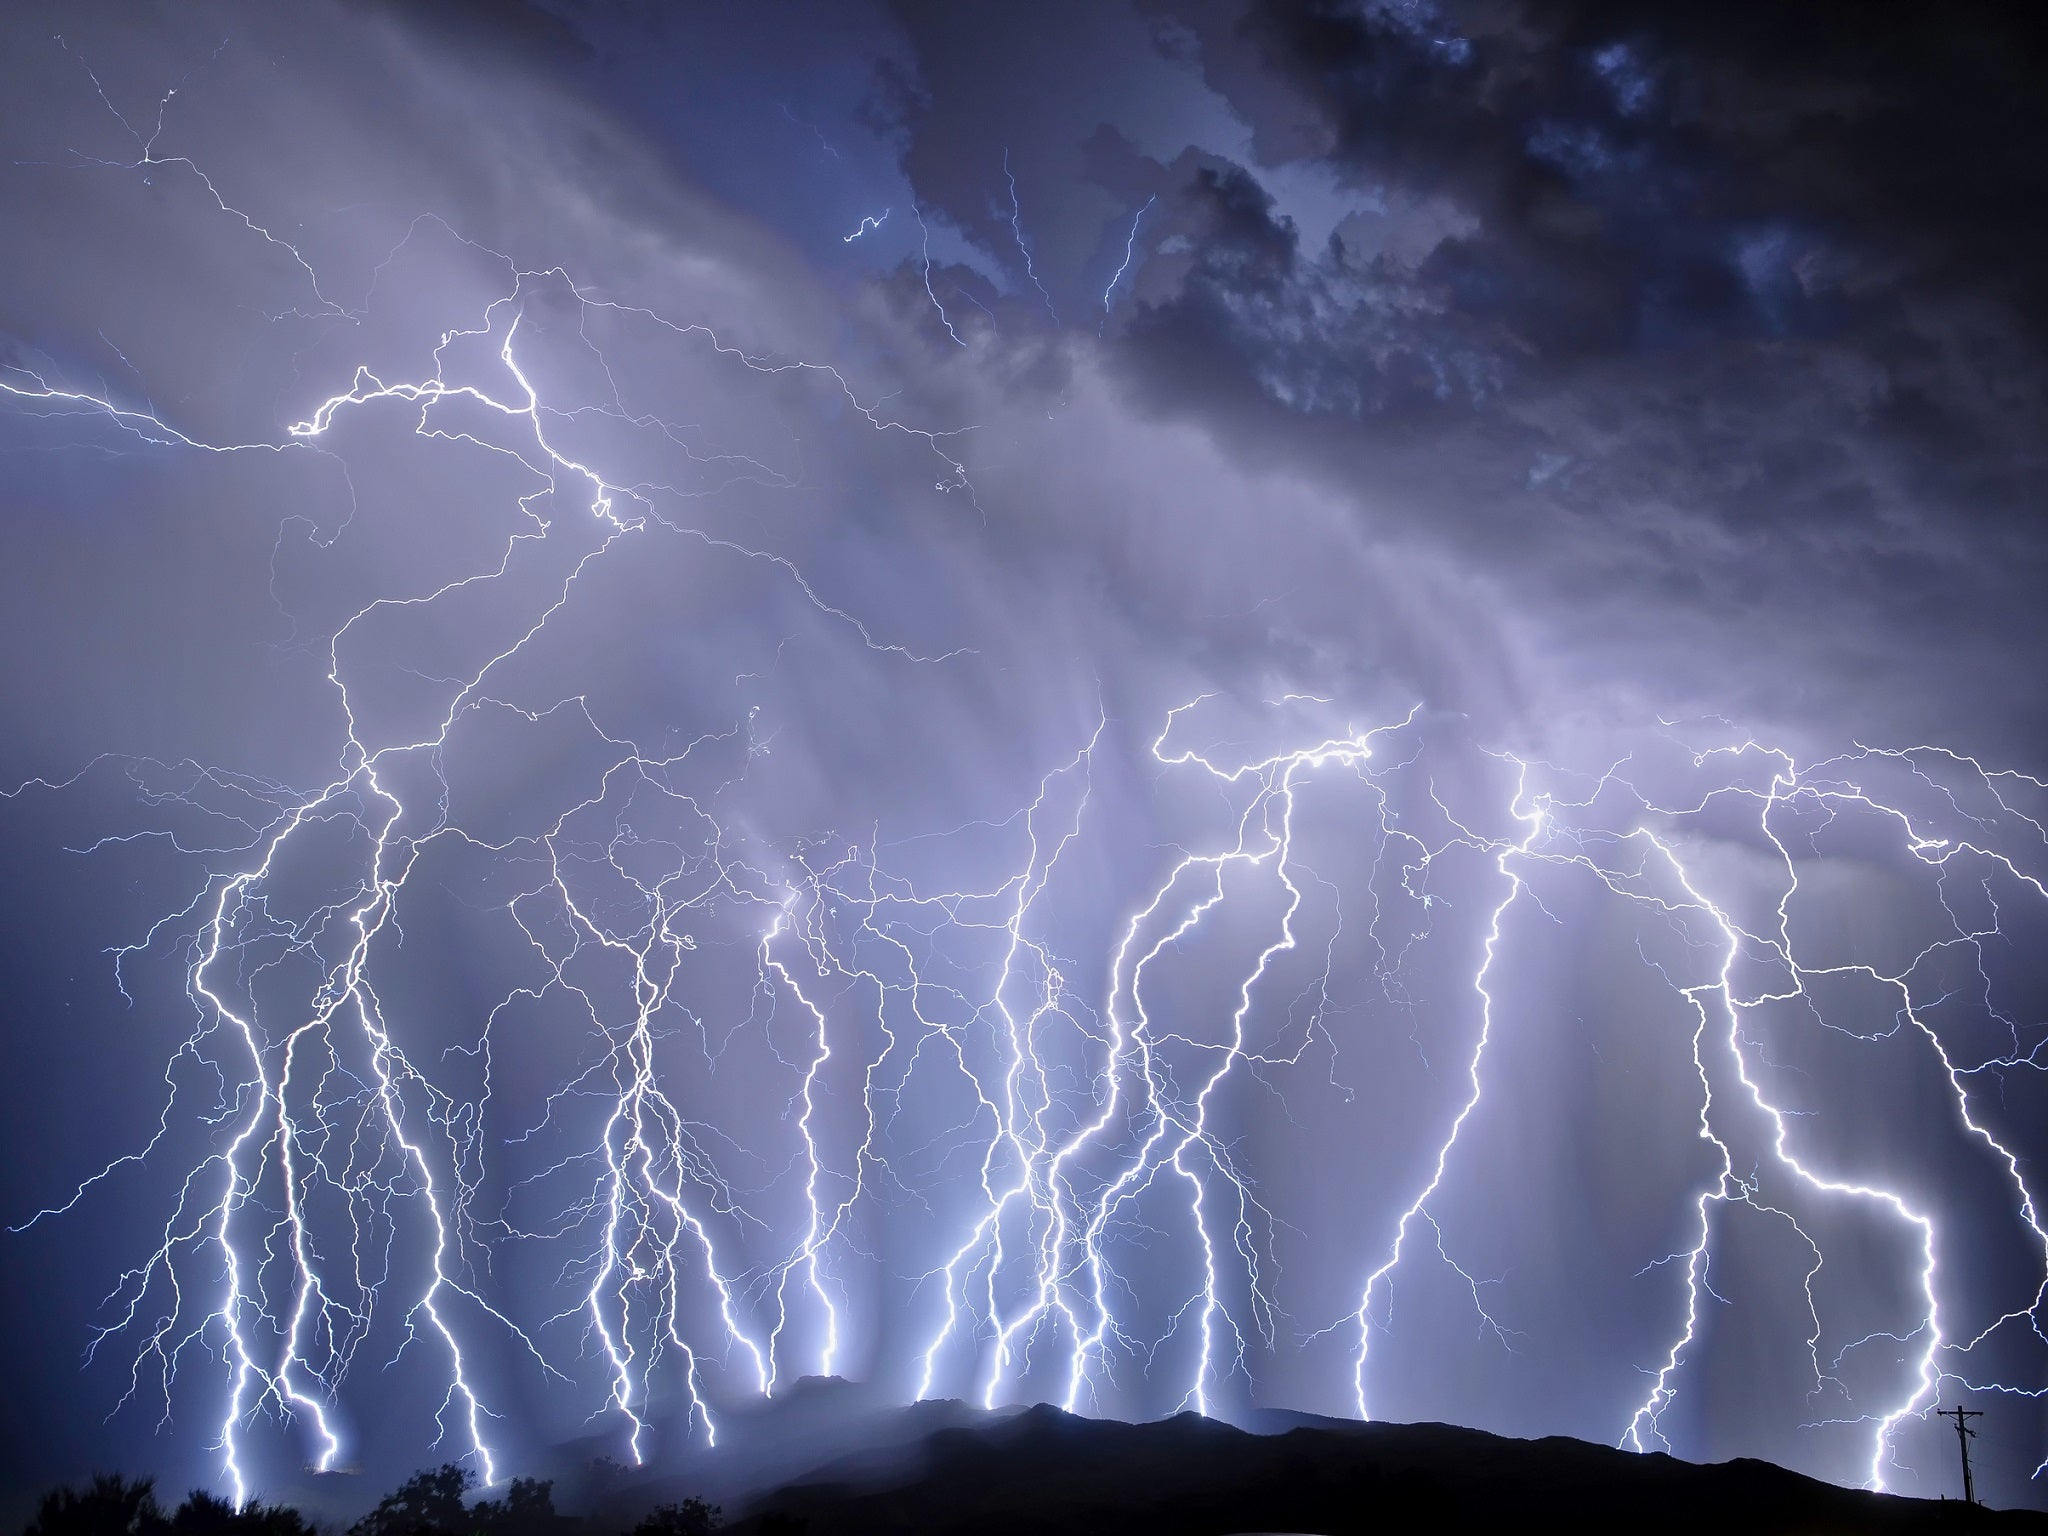 Two of the longest and biggest lightning strikes on earth recorded